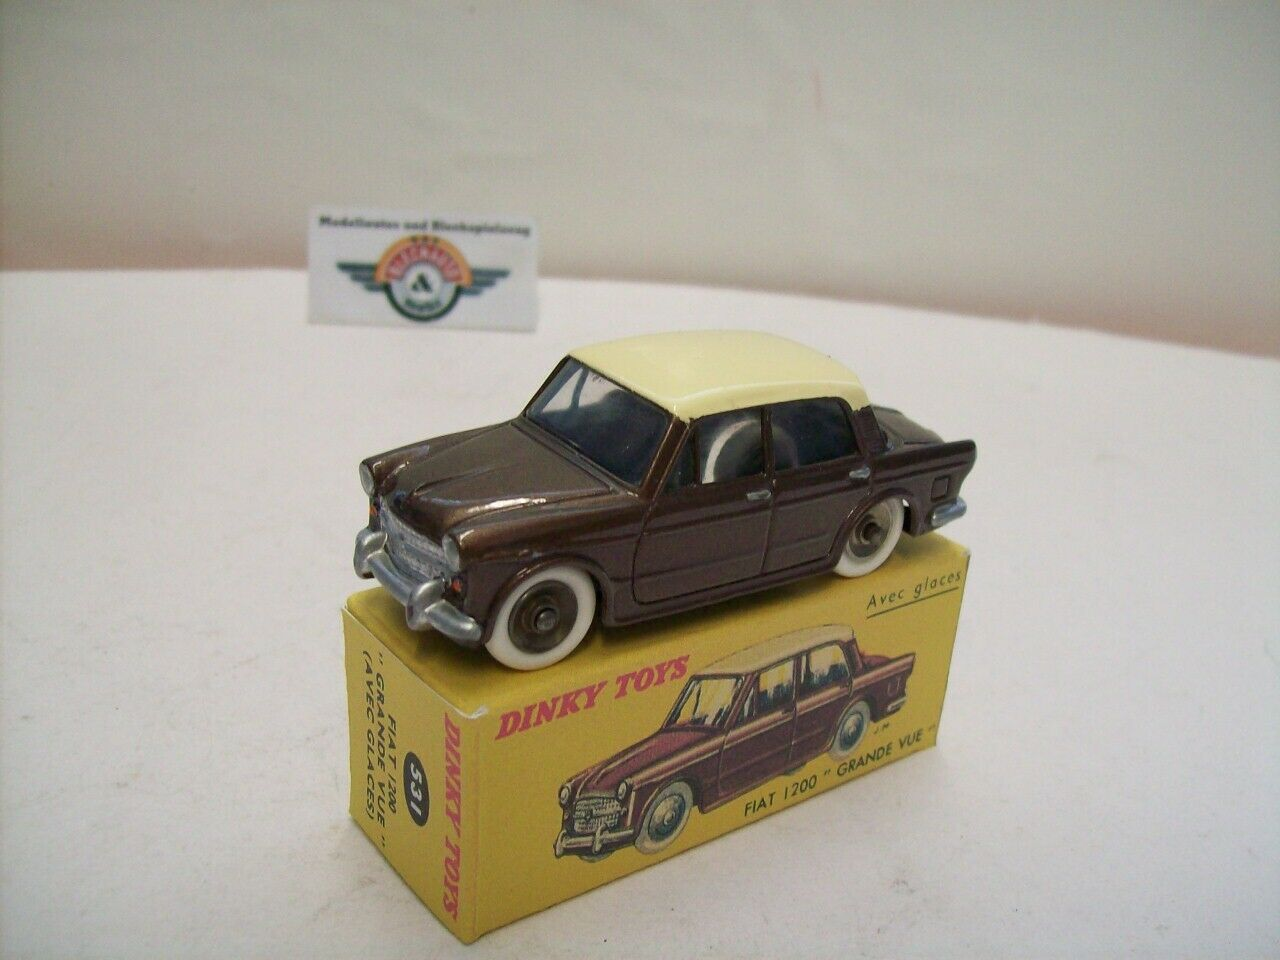 Fiat 1200  Grande vue  1957, marron Cream, dinky-toys (made in France) 1 43